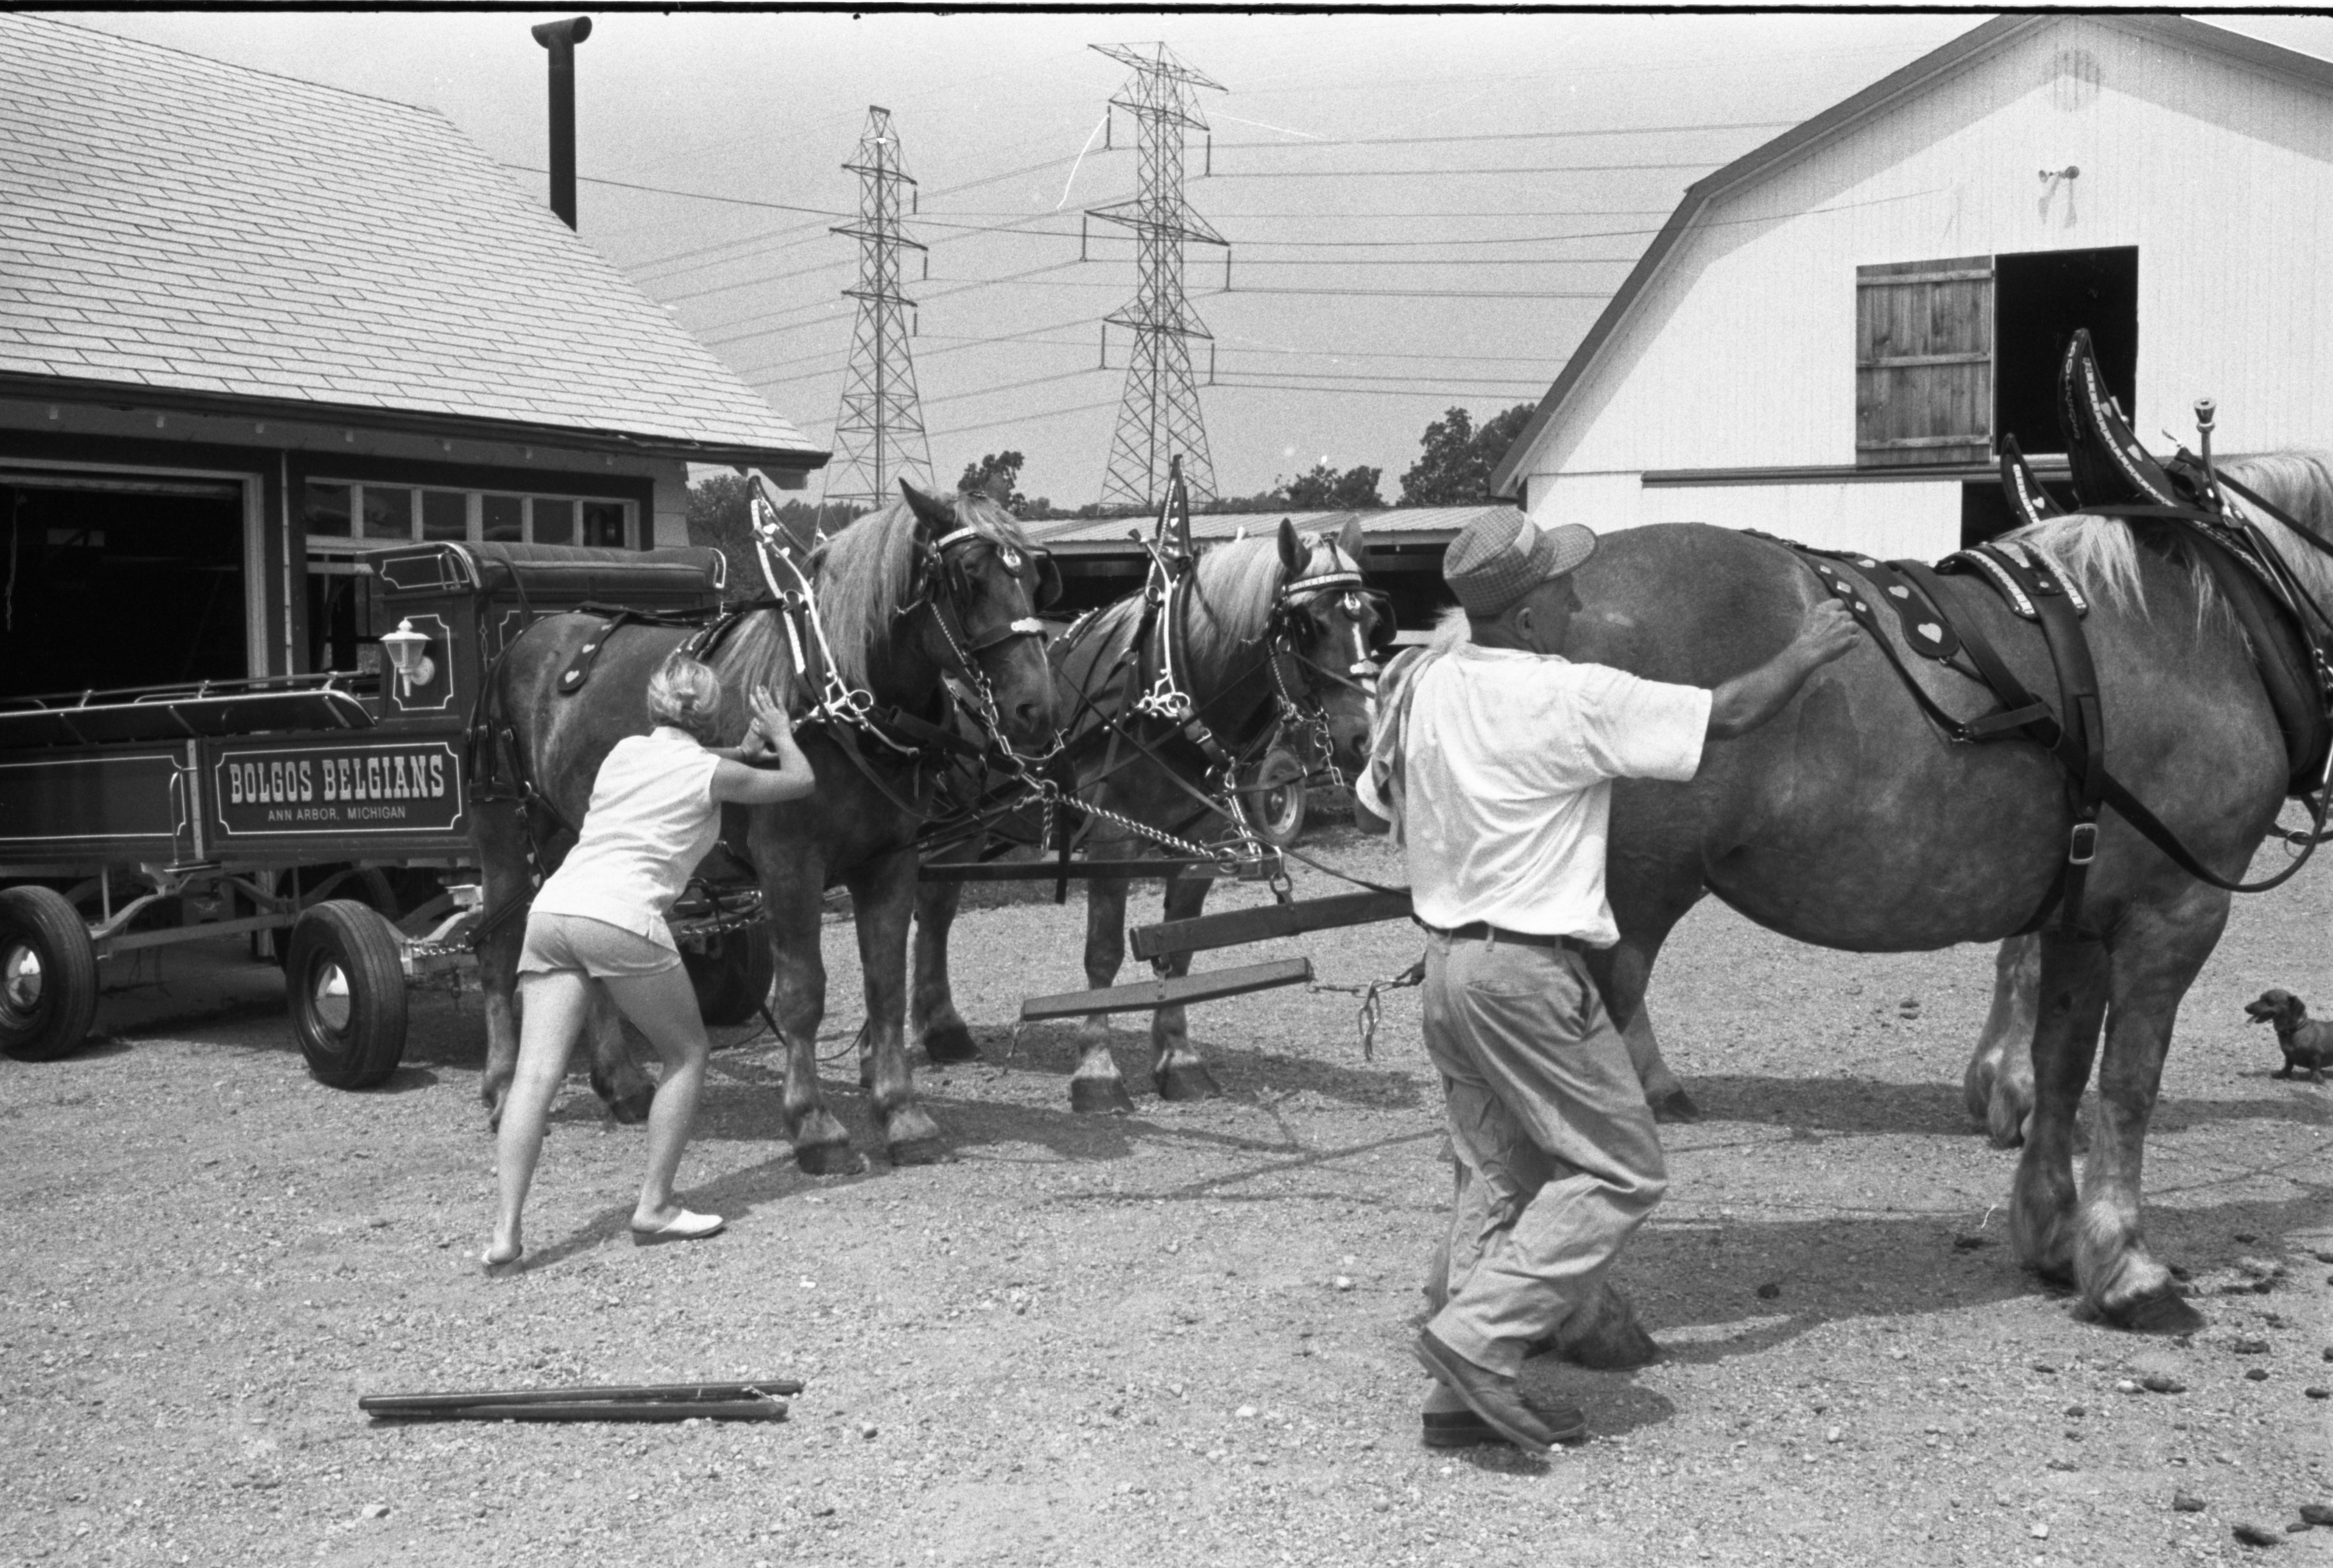 Zina Bolgos Readies His Belgian Draft Horses For The 4-H Show, July 29, 1973 image